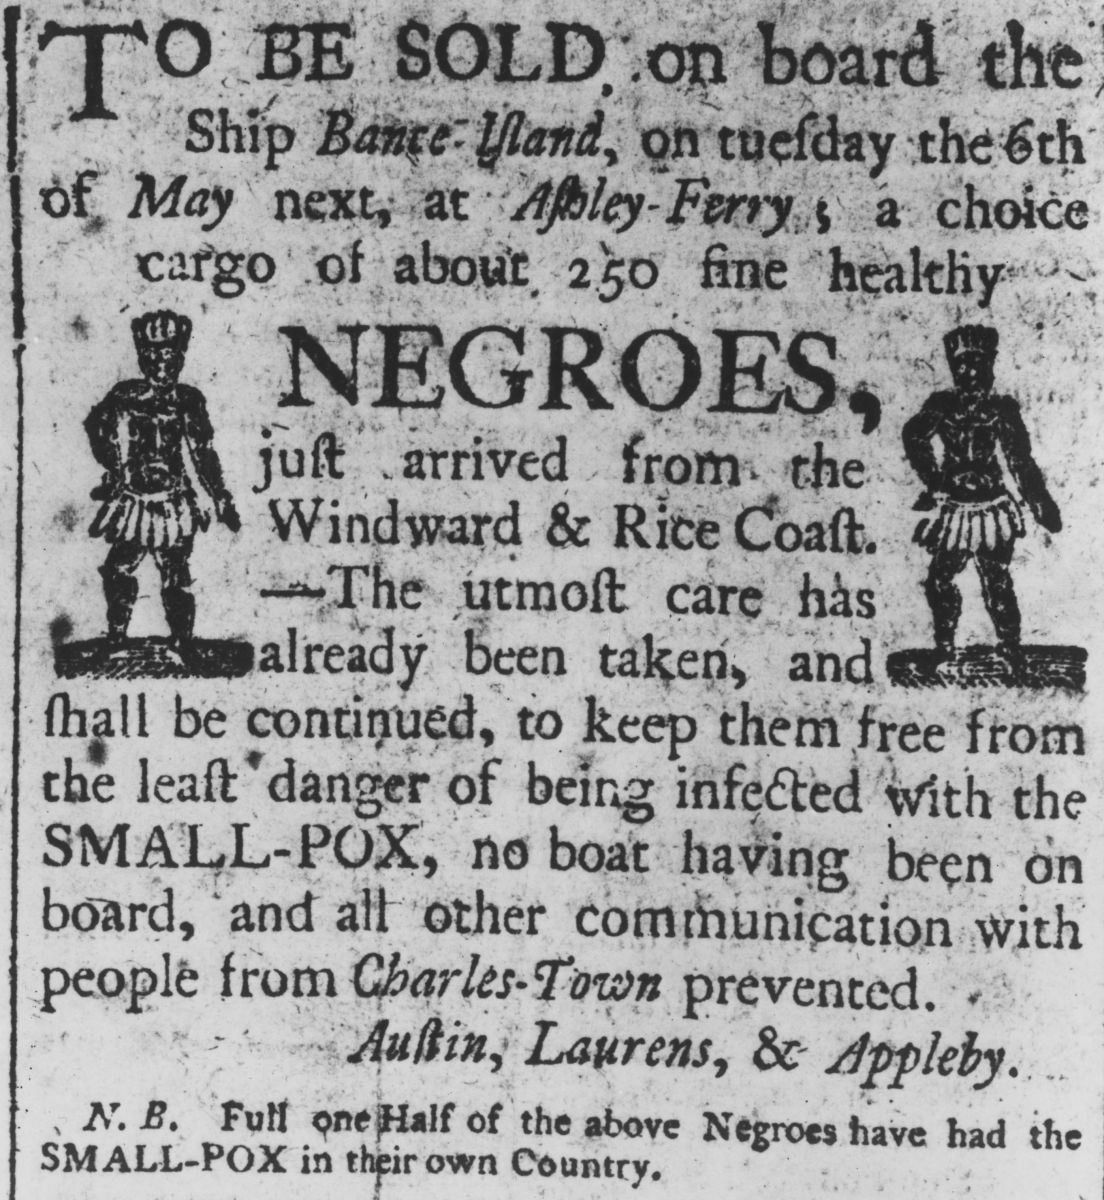 A Boston advertisement for a cargo of about 250 enslaved people recently arrived from Africa circa 1700, particularly stressing that the enslaved people are free of smallpox, having been quarantined on their ship.